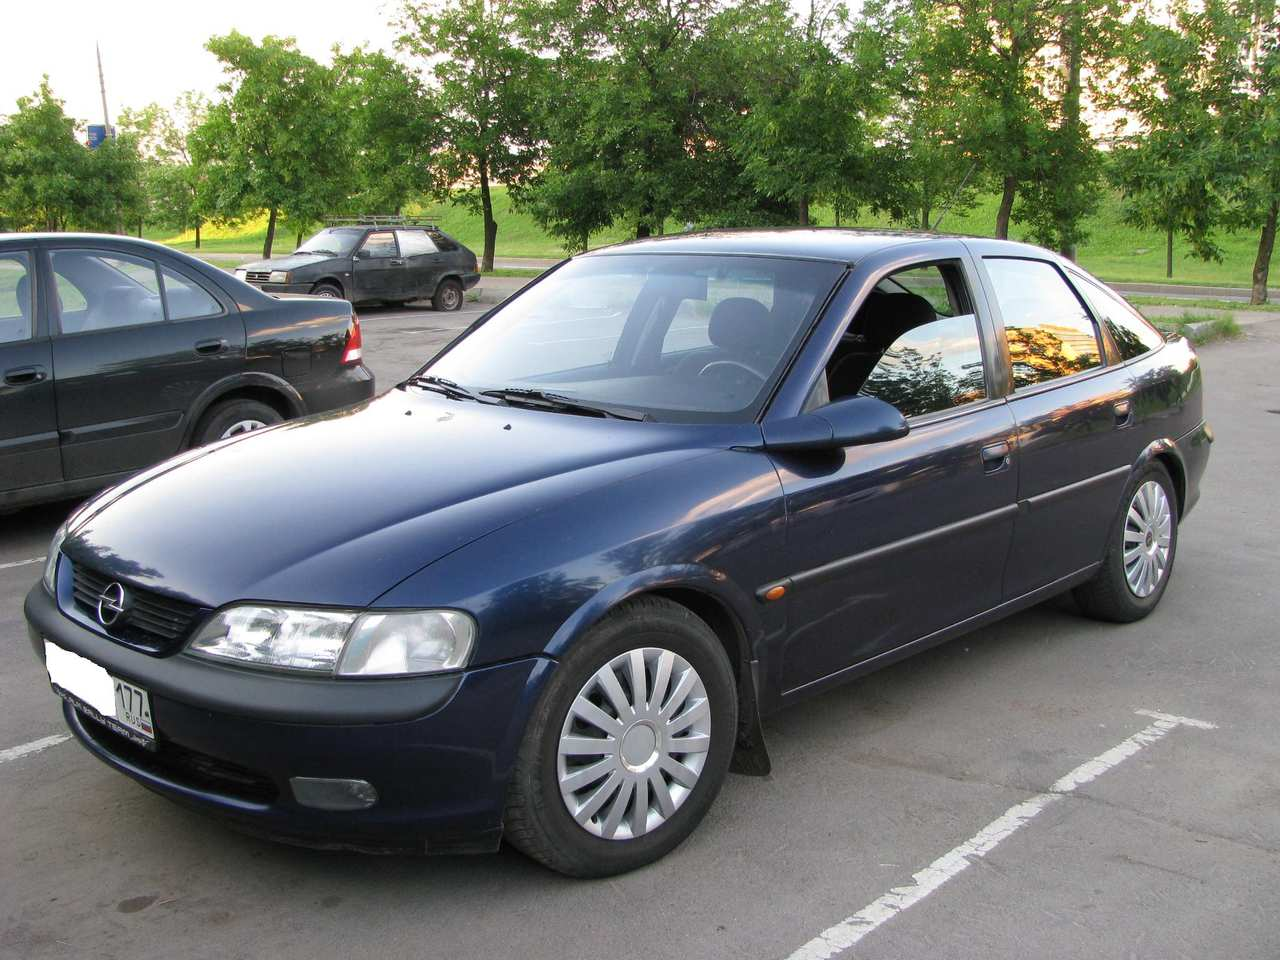 1998 opel vectra b cc pictures information and specs. Black Bedroom Furniture Sets. Home Design Ideas